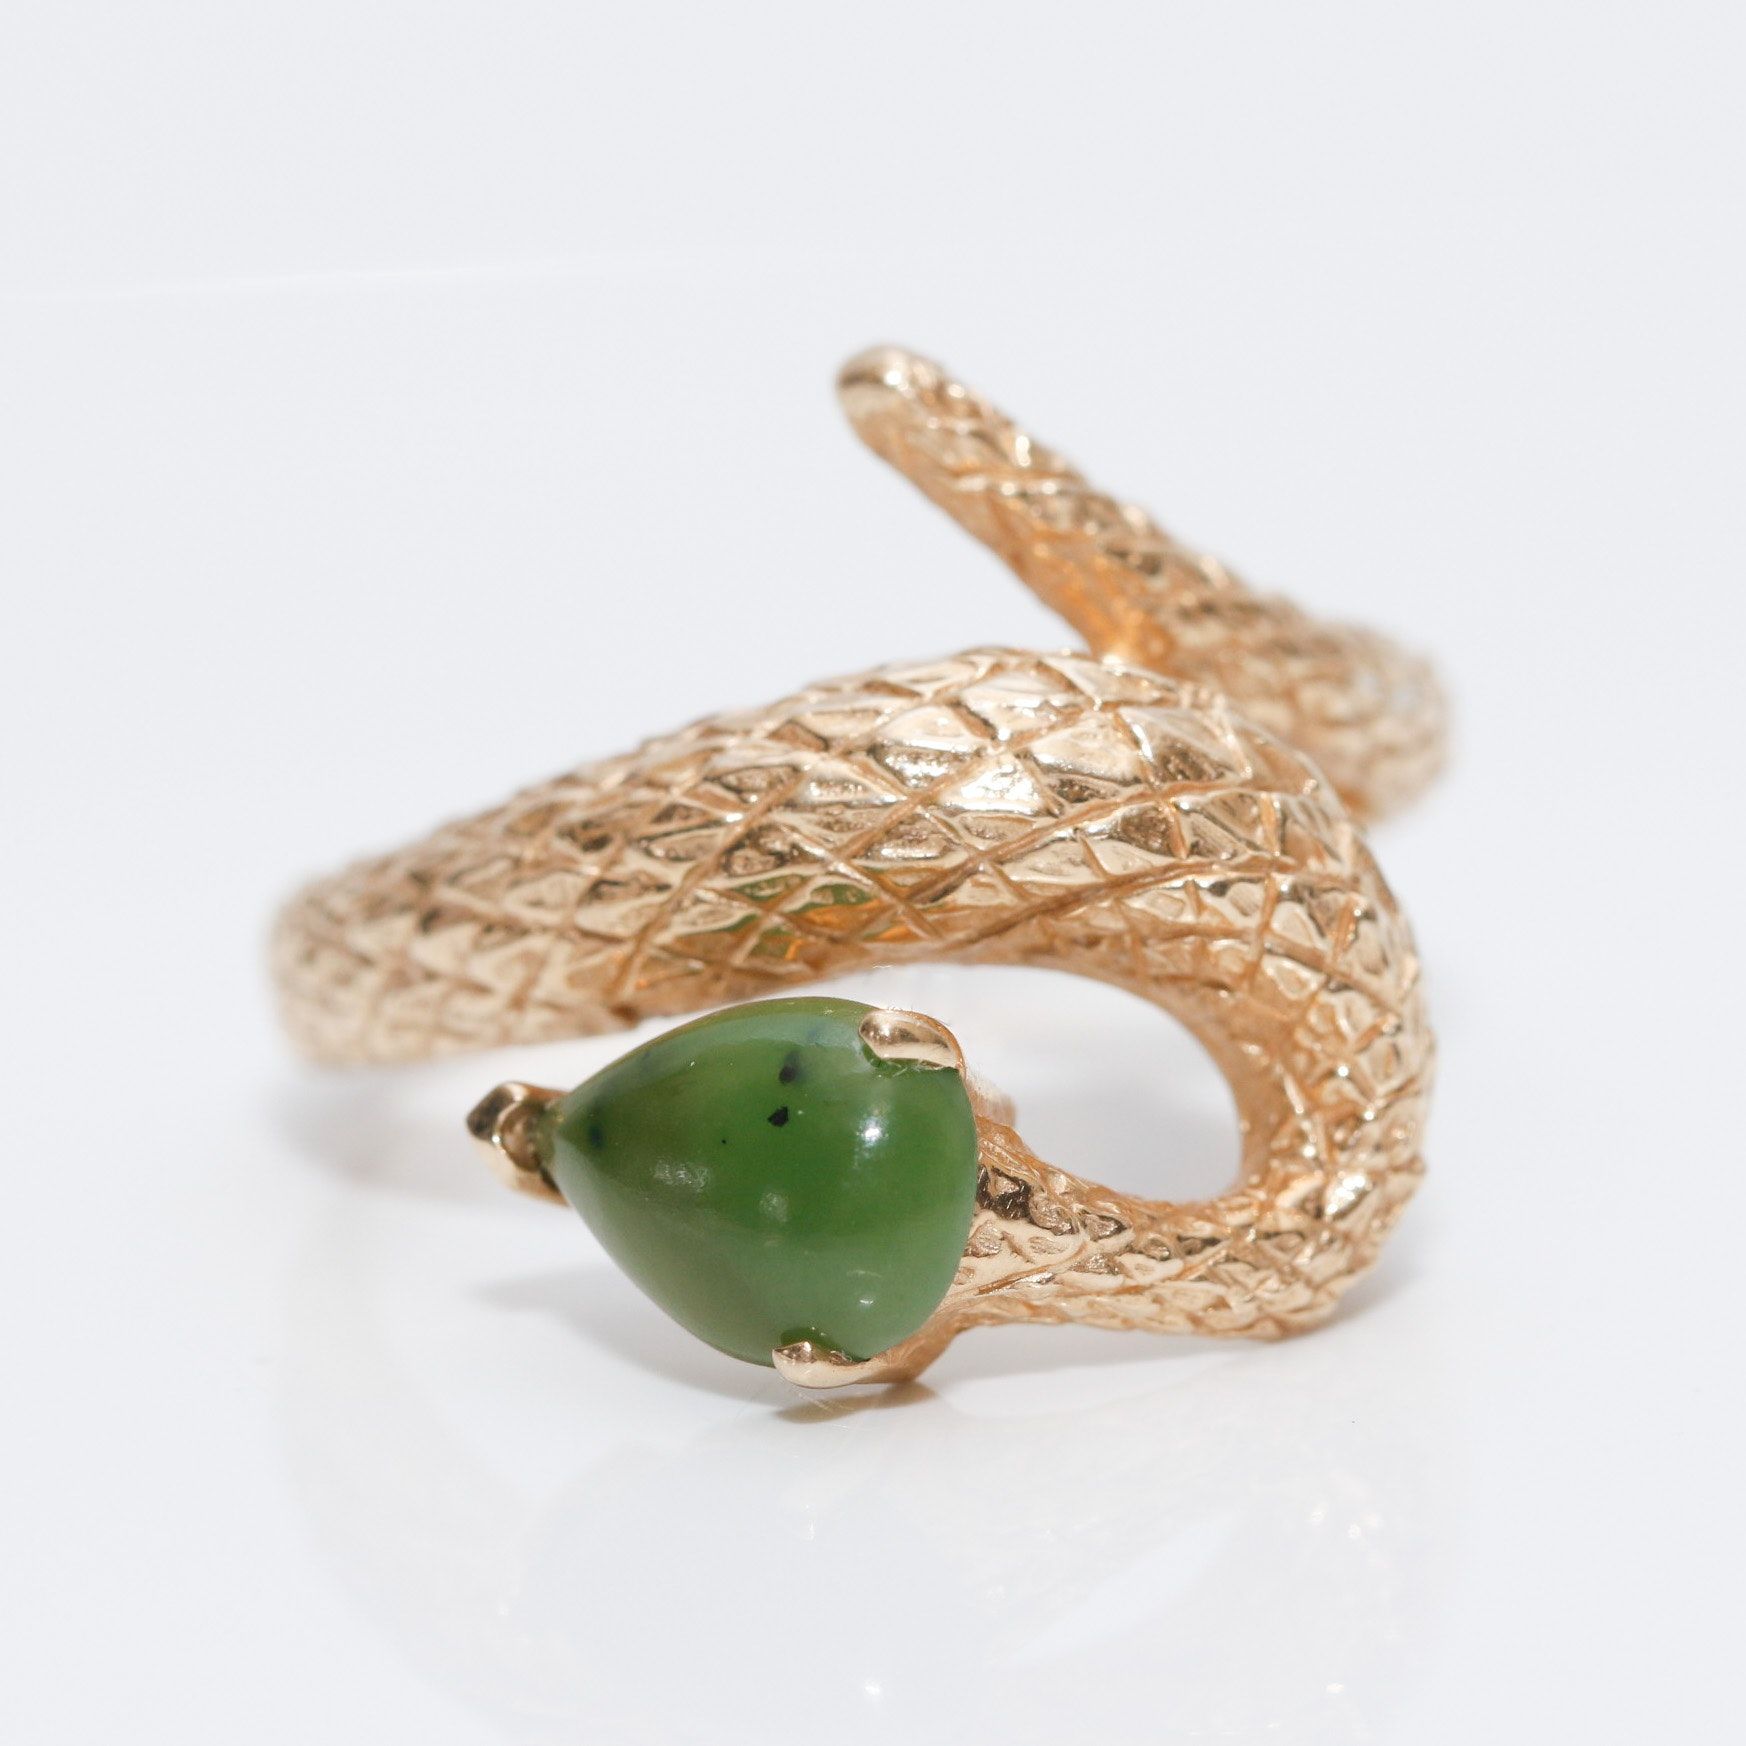 10K Yellow Gold Nephrite Serpent Ring